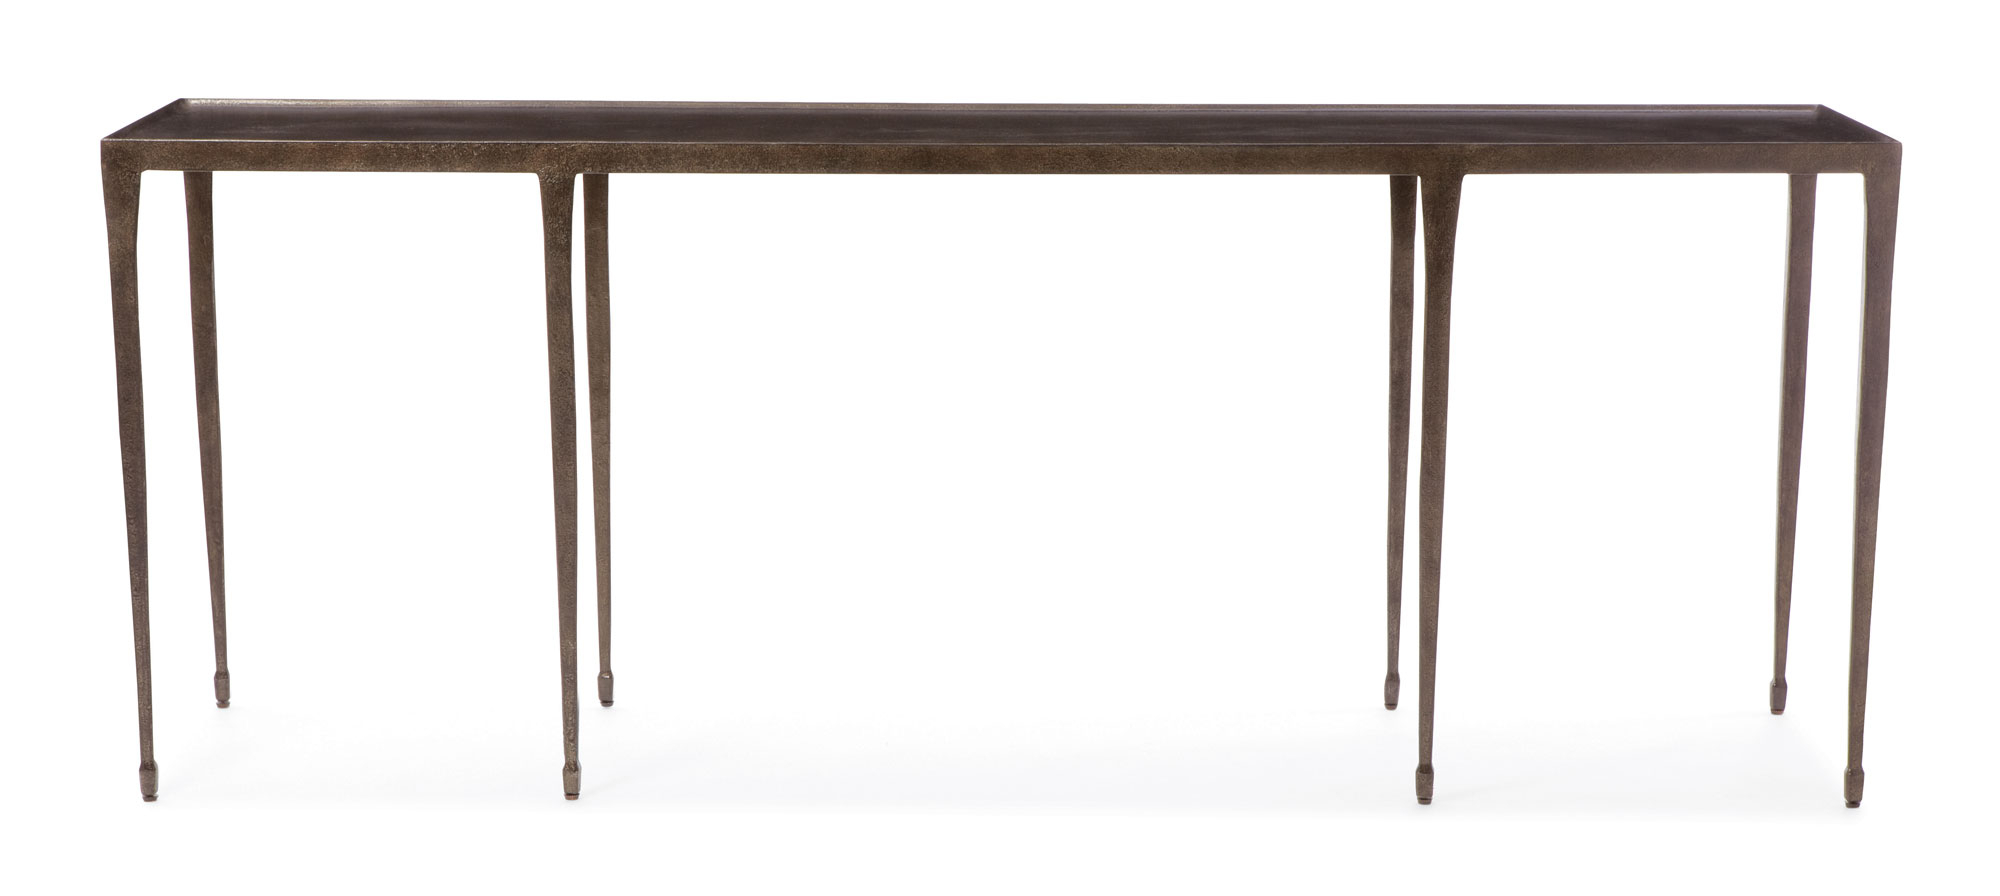 Bernhardt Console Table Halden 84 Inch Hammered Iron Distressed For Newest Silviano 60 Inch Iron Console Tables (Gallery 5 of 20)